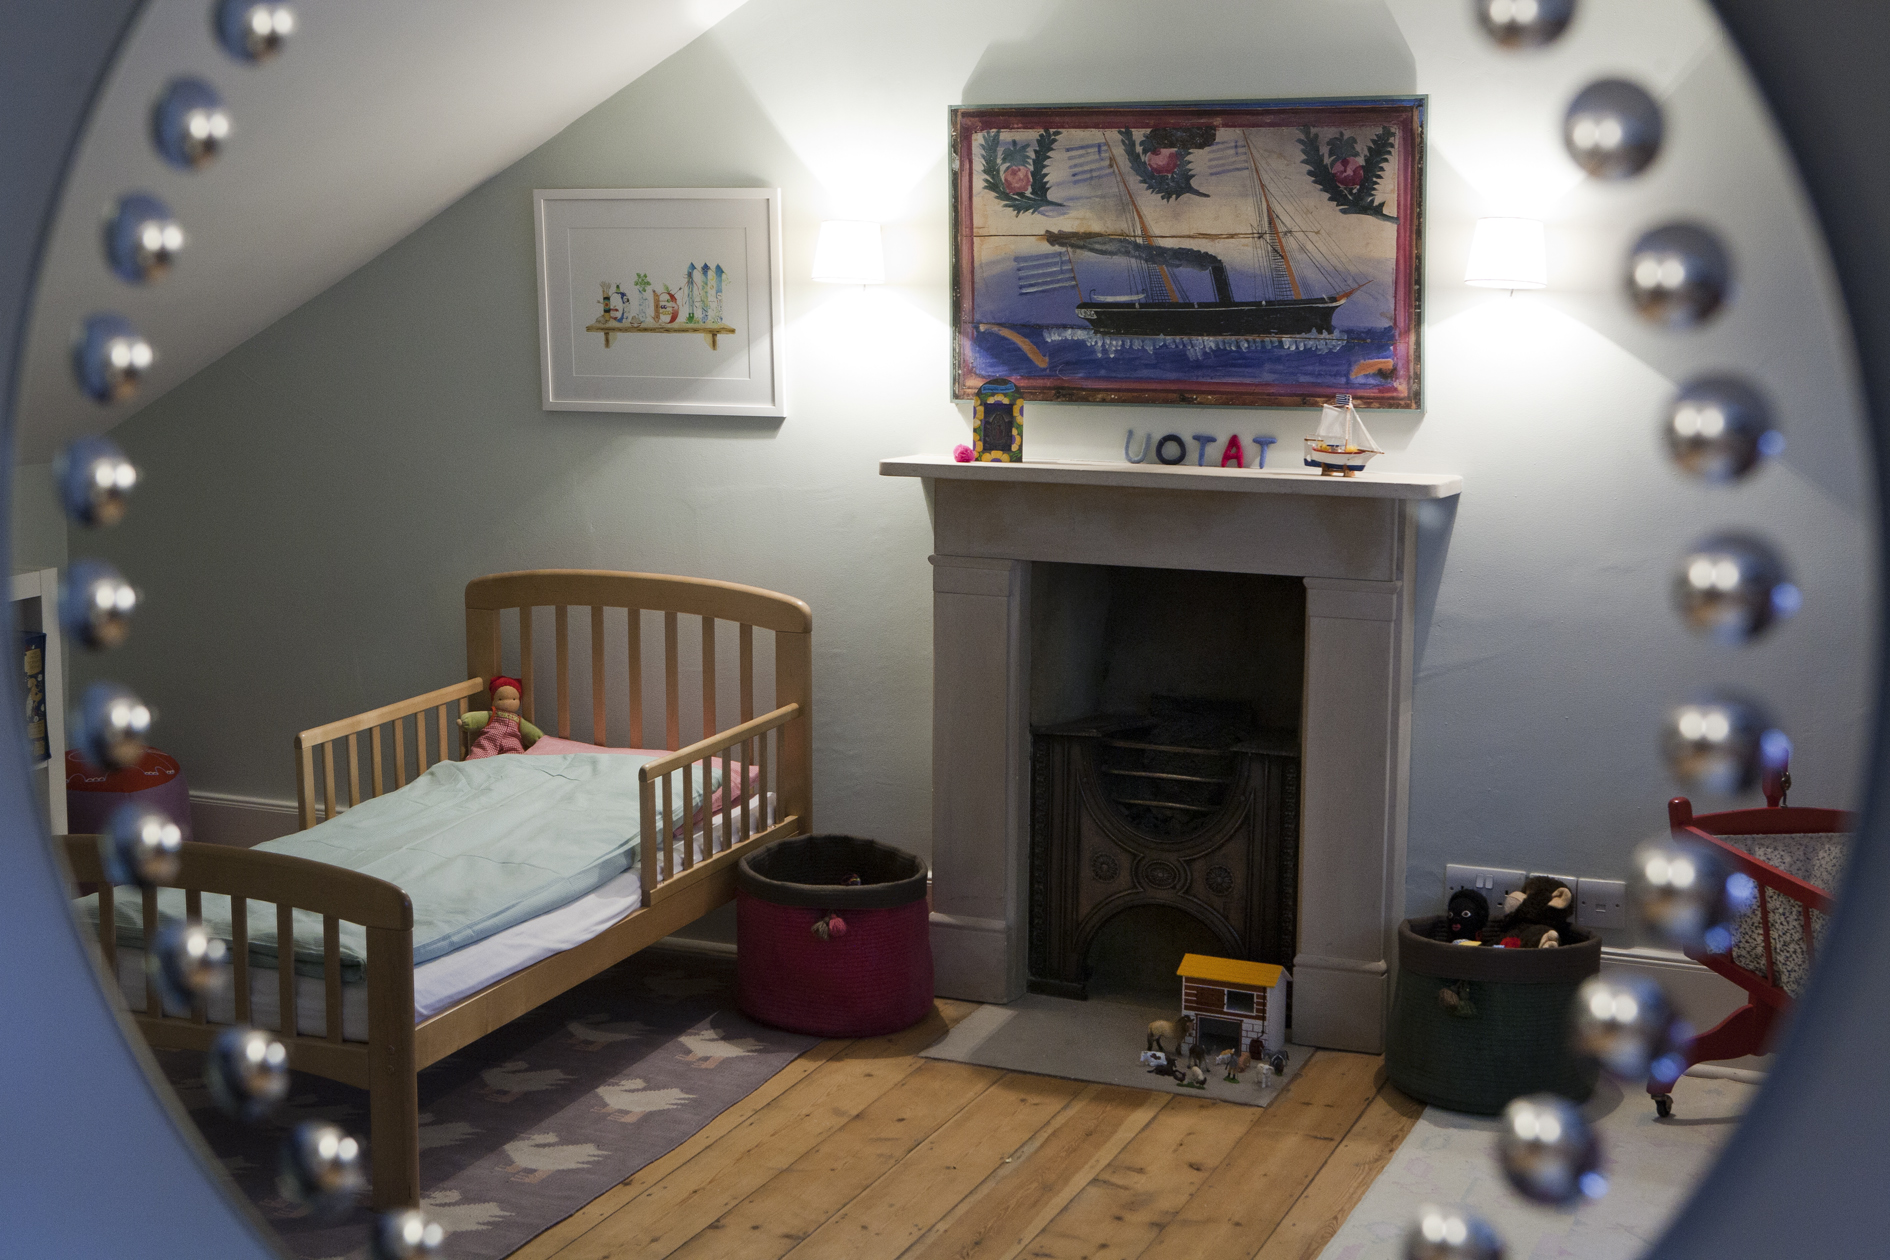 The mirror, originally hung in a bathroom, is a happy addition to the children's room